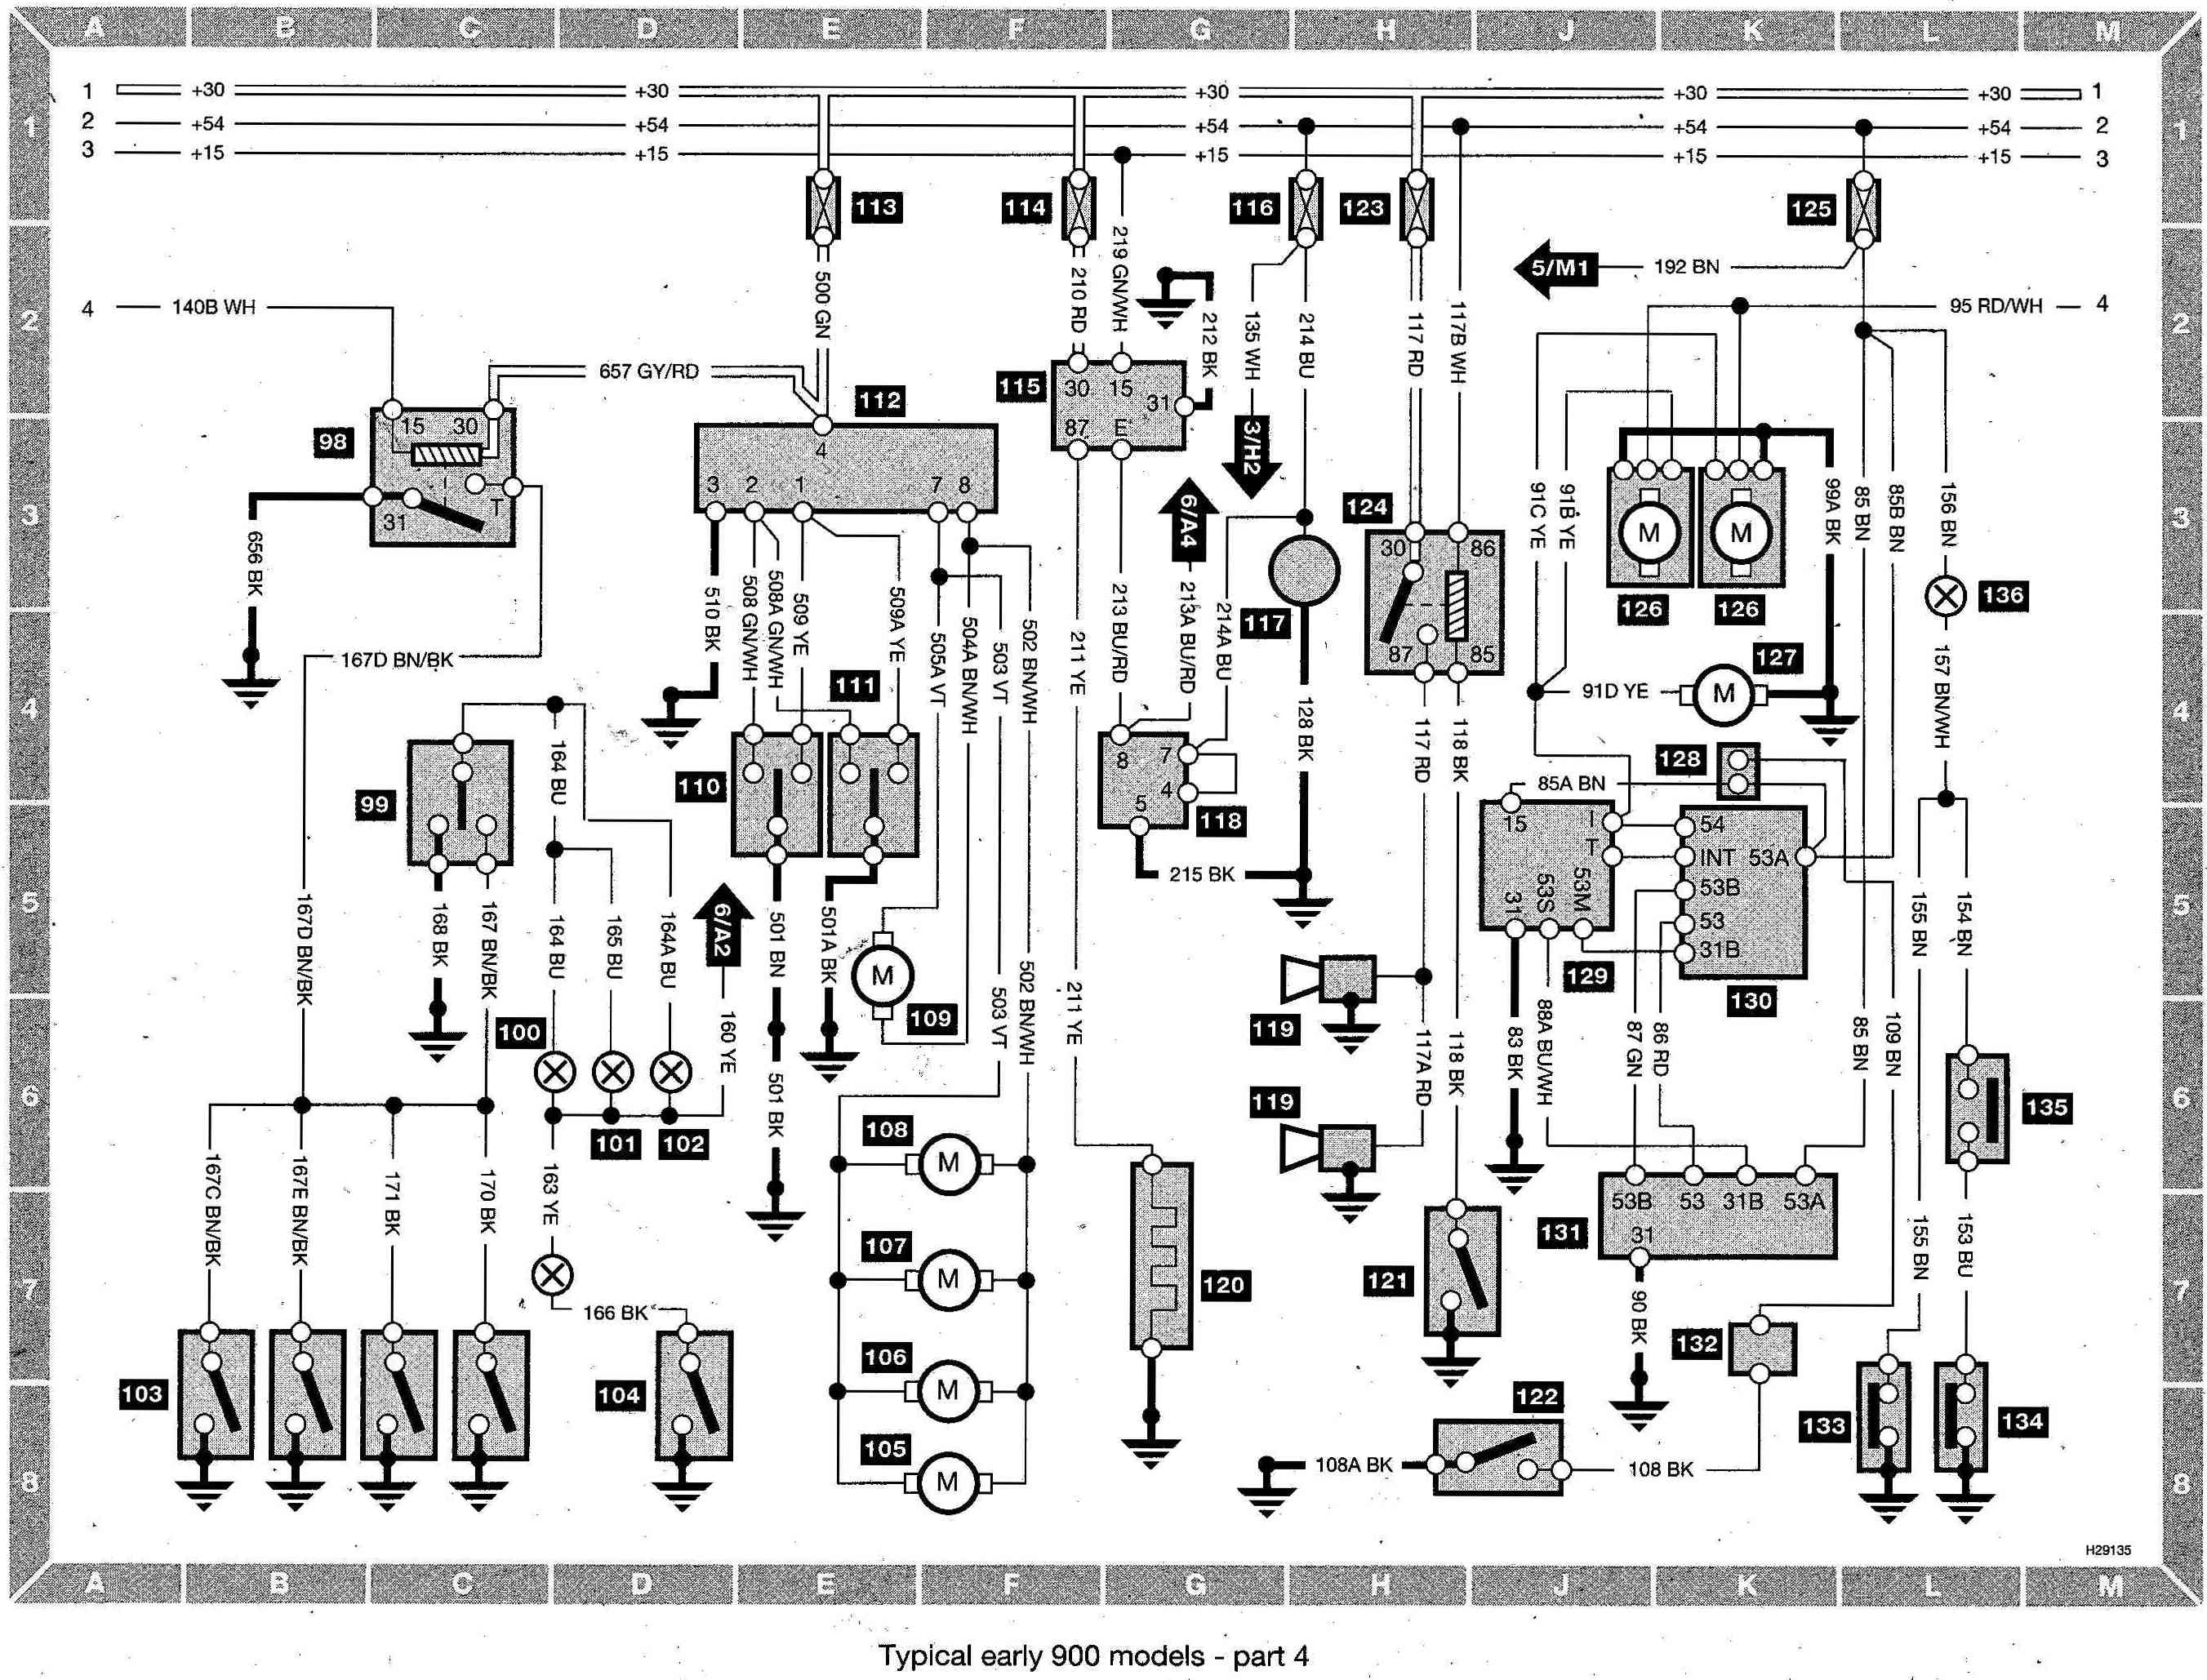 saab 900 wiring diagram download 2003 kia sedona fuse box diagram 2003 free engine image #1